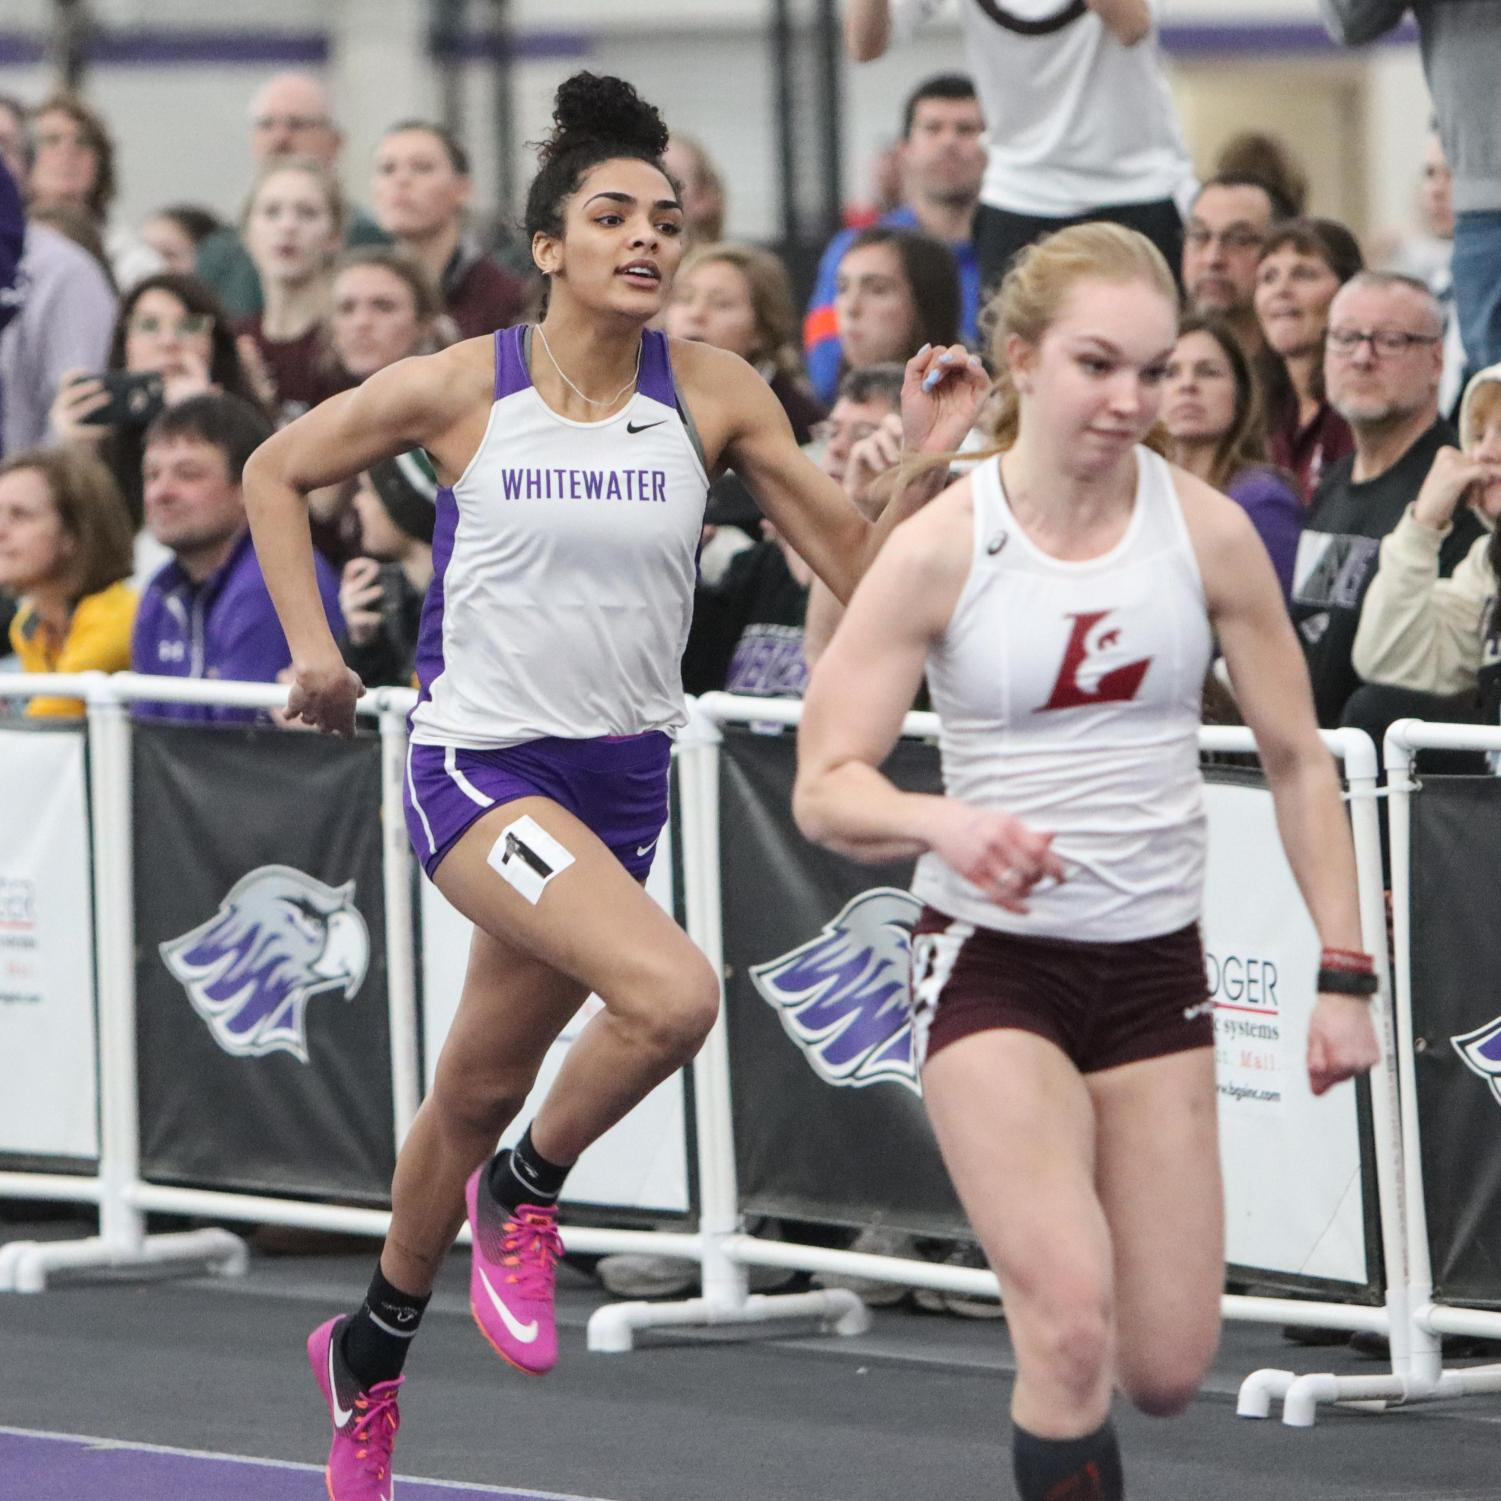 Syndey Rossow raced in three events, including the 60m Hurdles. She took 14th place with a time of 9.59, missing out on finals by 0.43 sec.